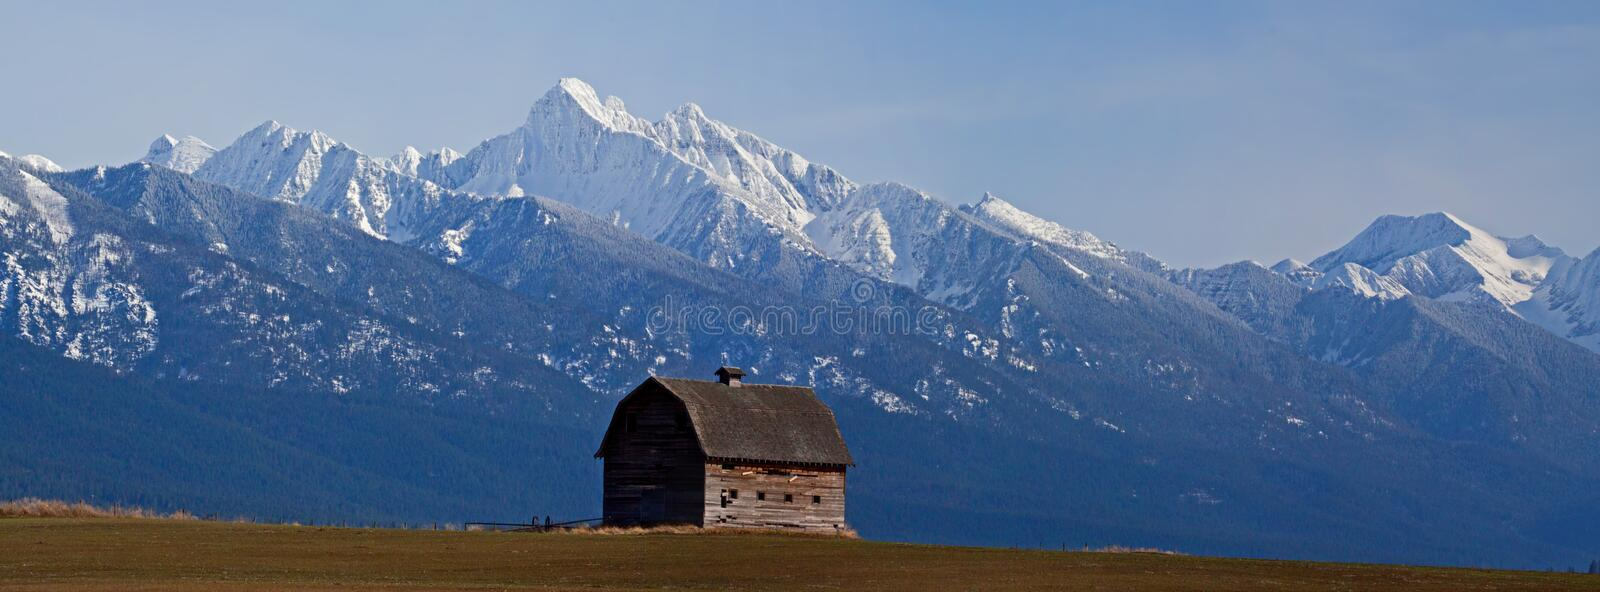 The Old Barn With The Snowy Mission Mountains